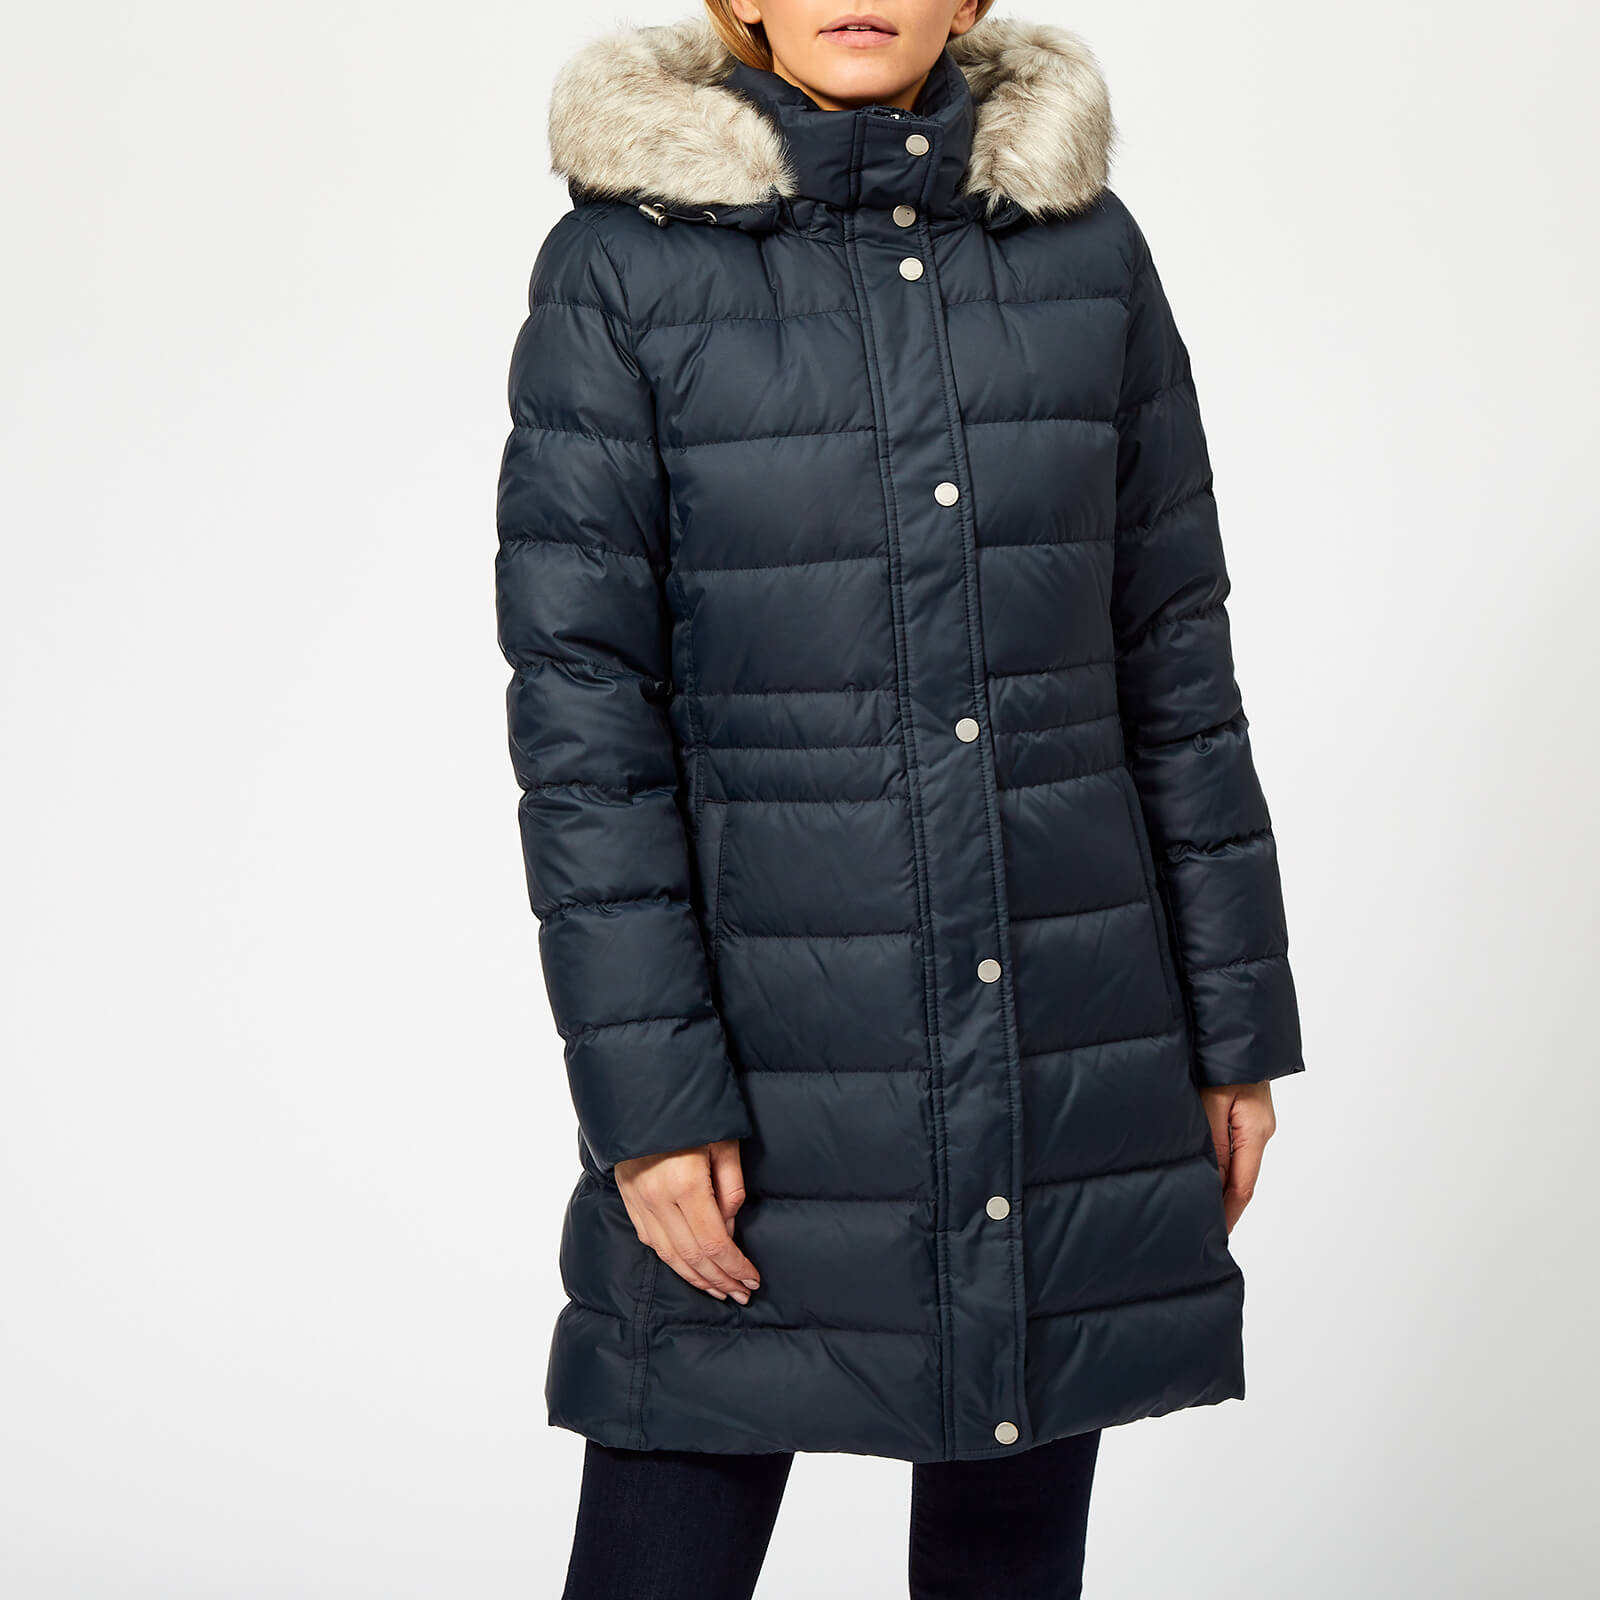 07a850fb Tommy Hilfiger Women's New Tyra Down Coat - Midnight Womens Clothing |  TheHut.com